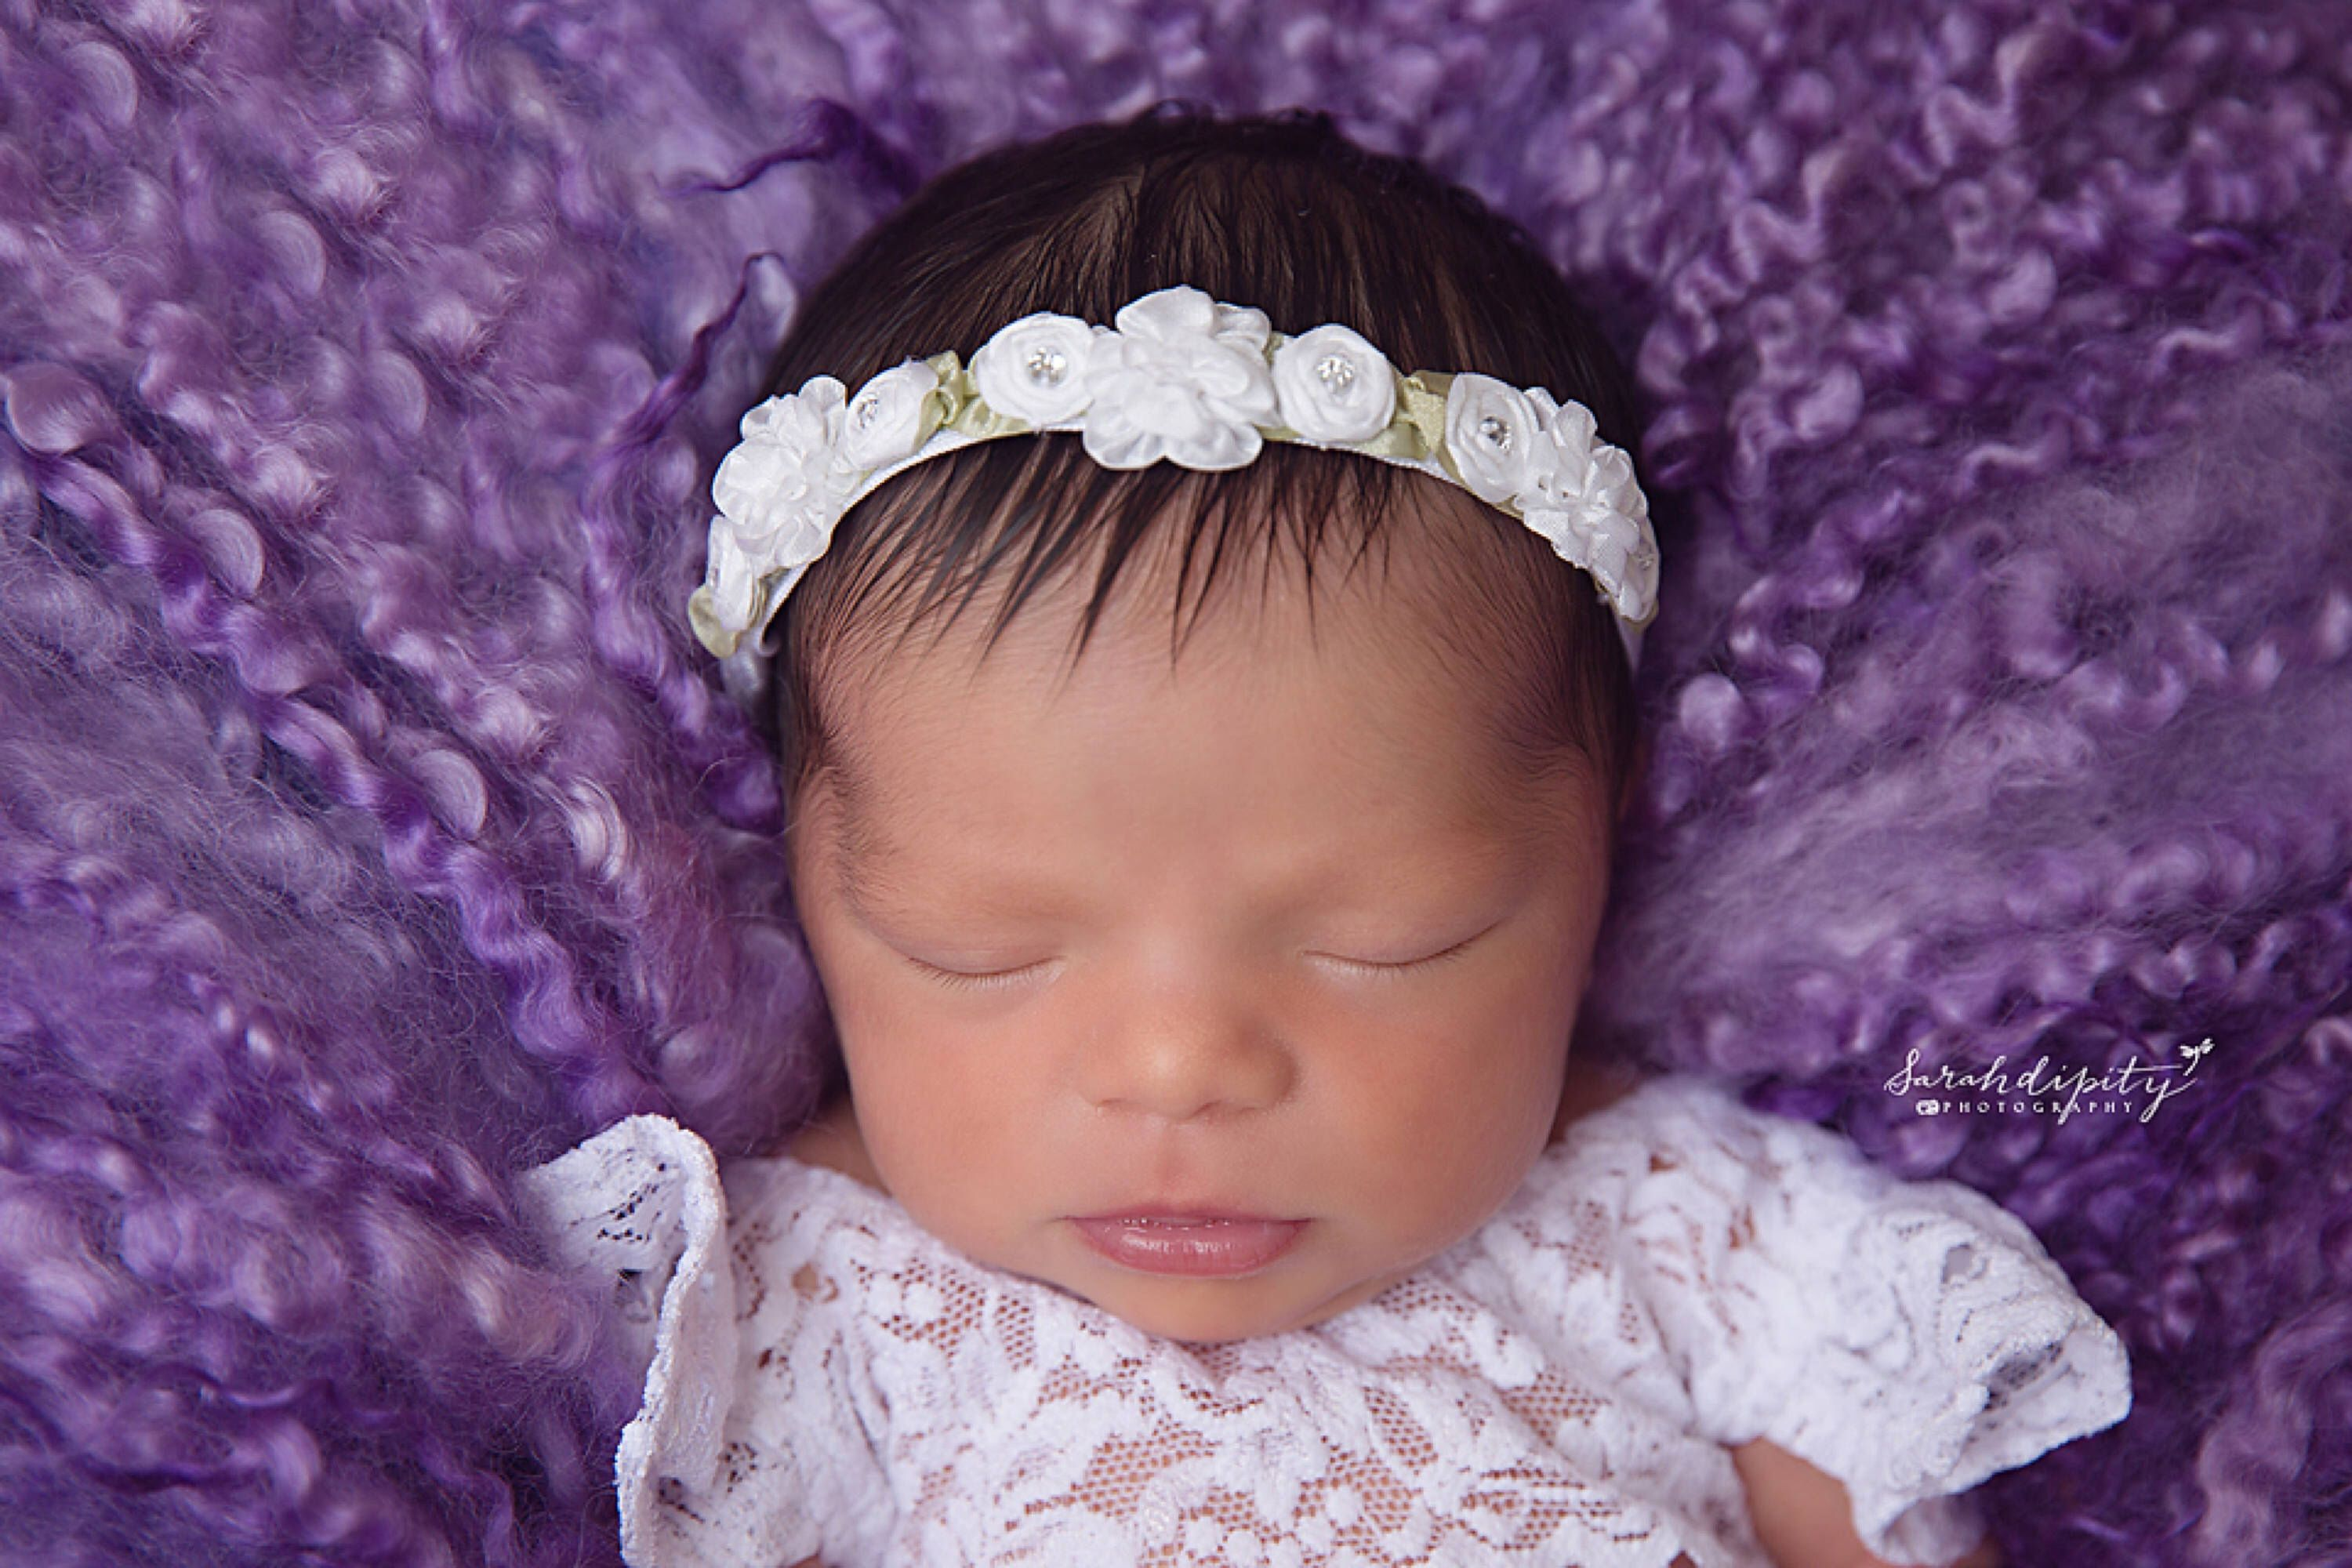 Excited to share the latest addition to my  etsy shop  White Mini Flower Halo  Headband for newborn photo shoots f1fae65911a